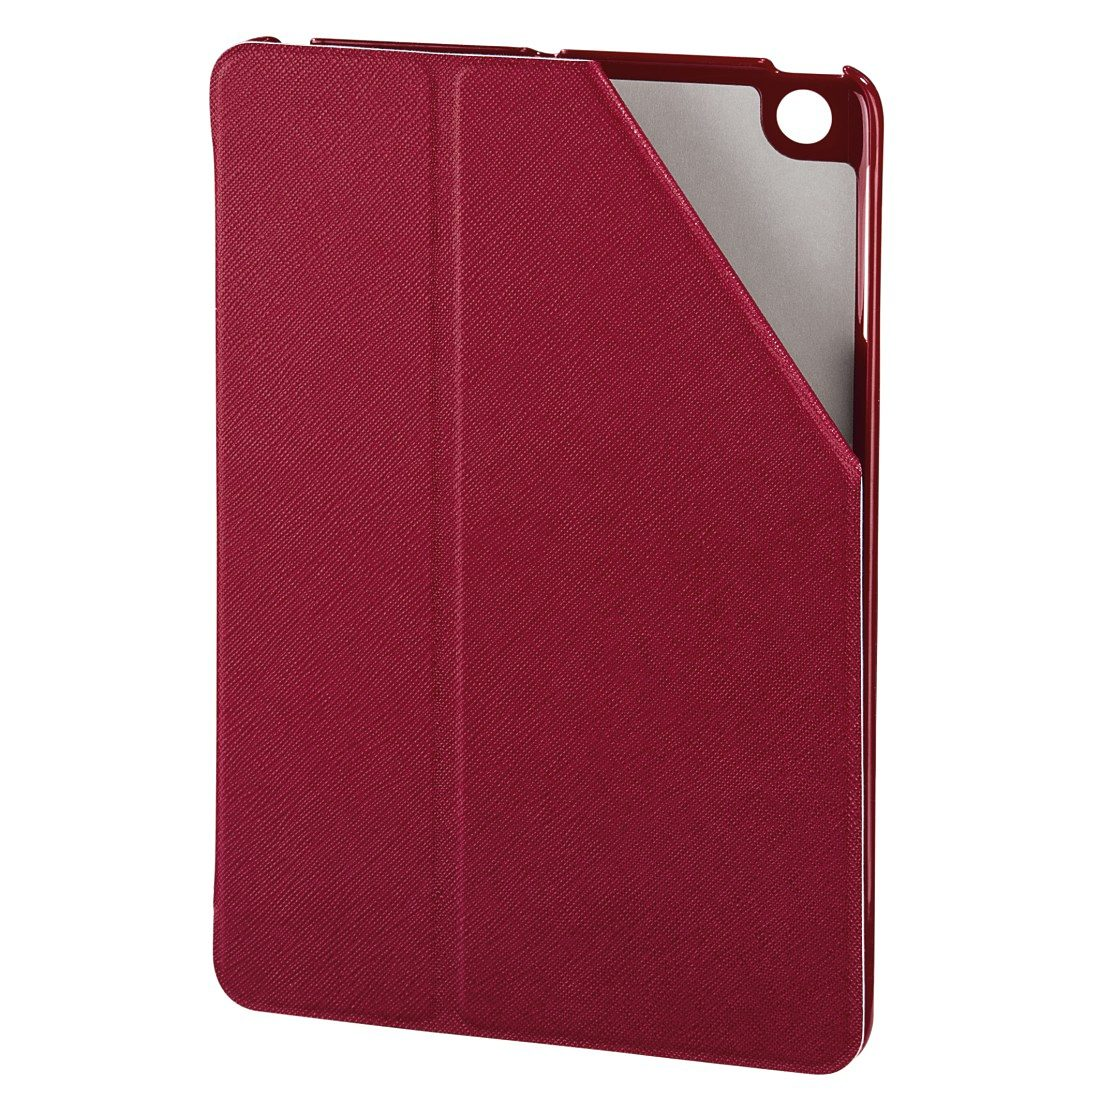 Hama Portfolio 2in1 für Apple iPad mini 1 – 3, Rot